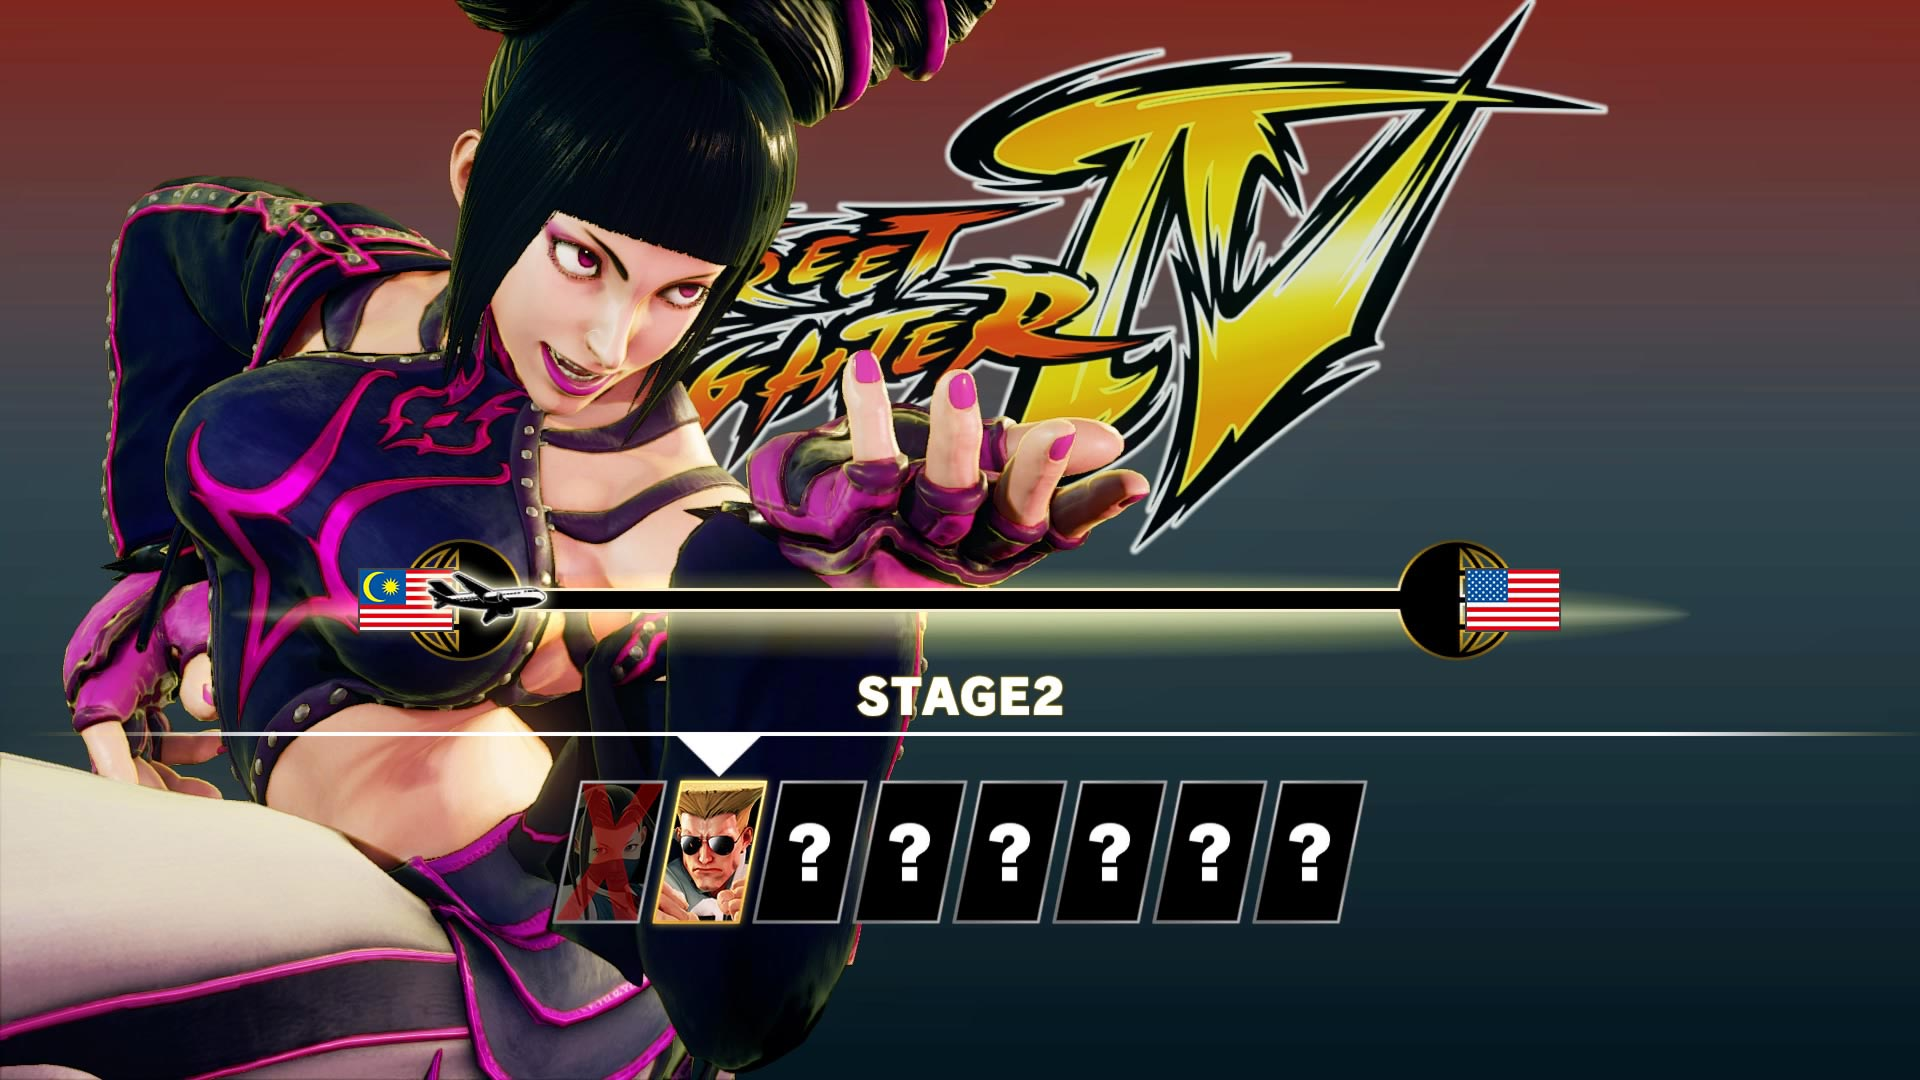 Arcade Mode 5 out of 11 image gallery